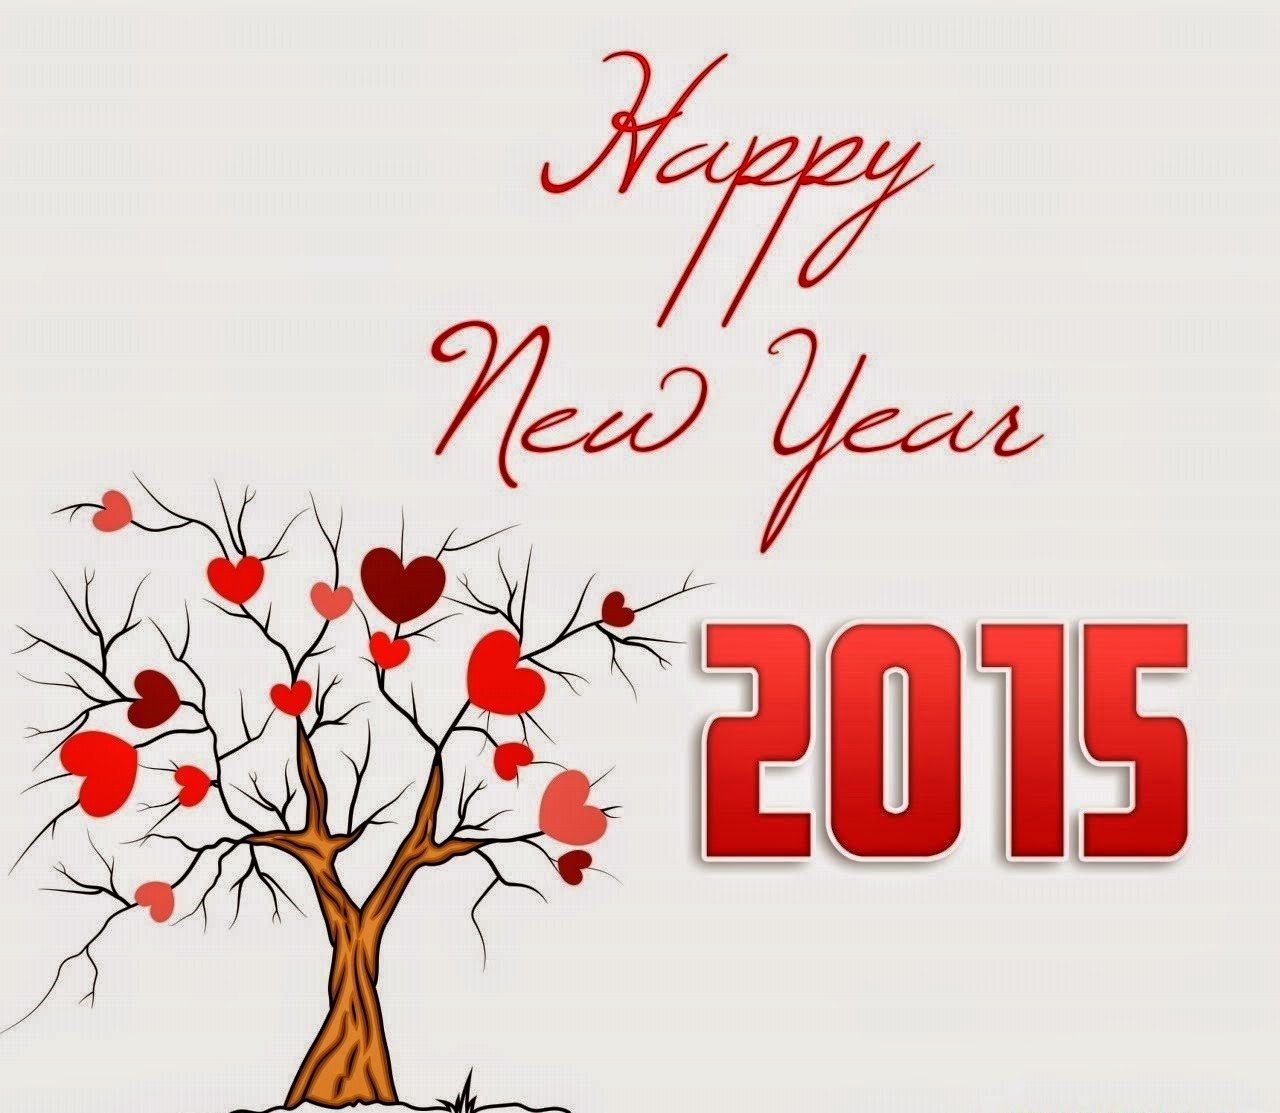 http://www.etcpb.com/happy-new-year-2015/